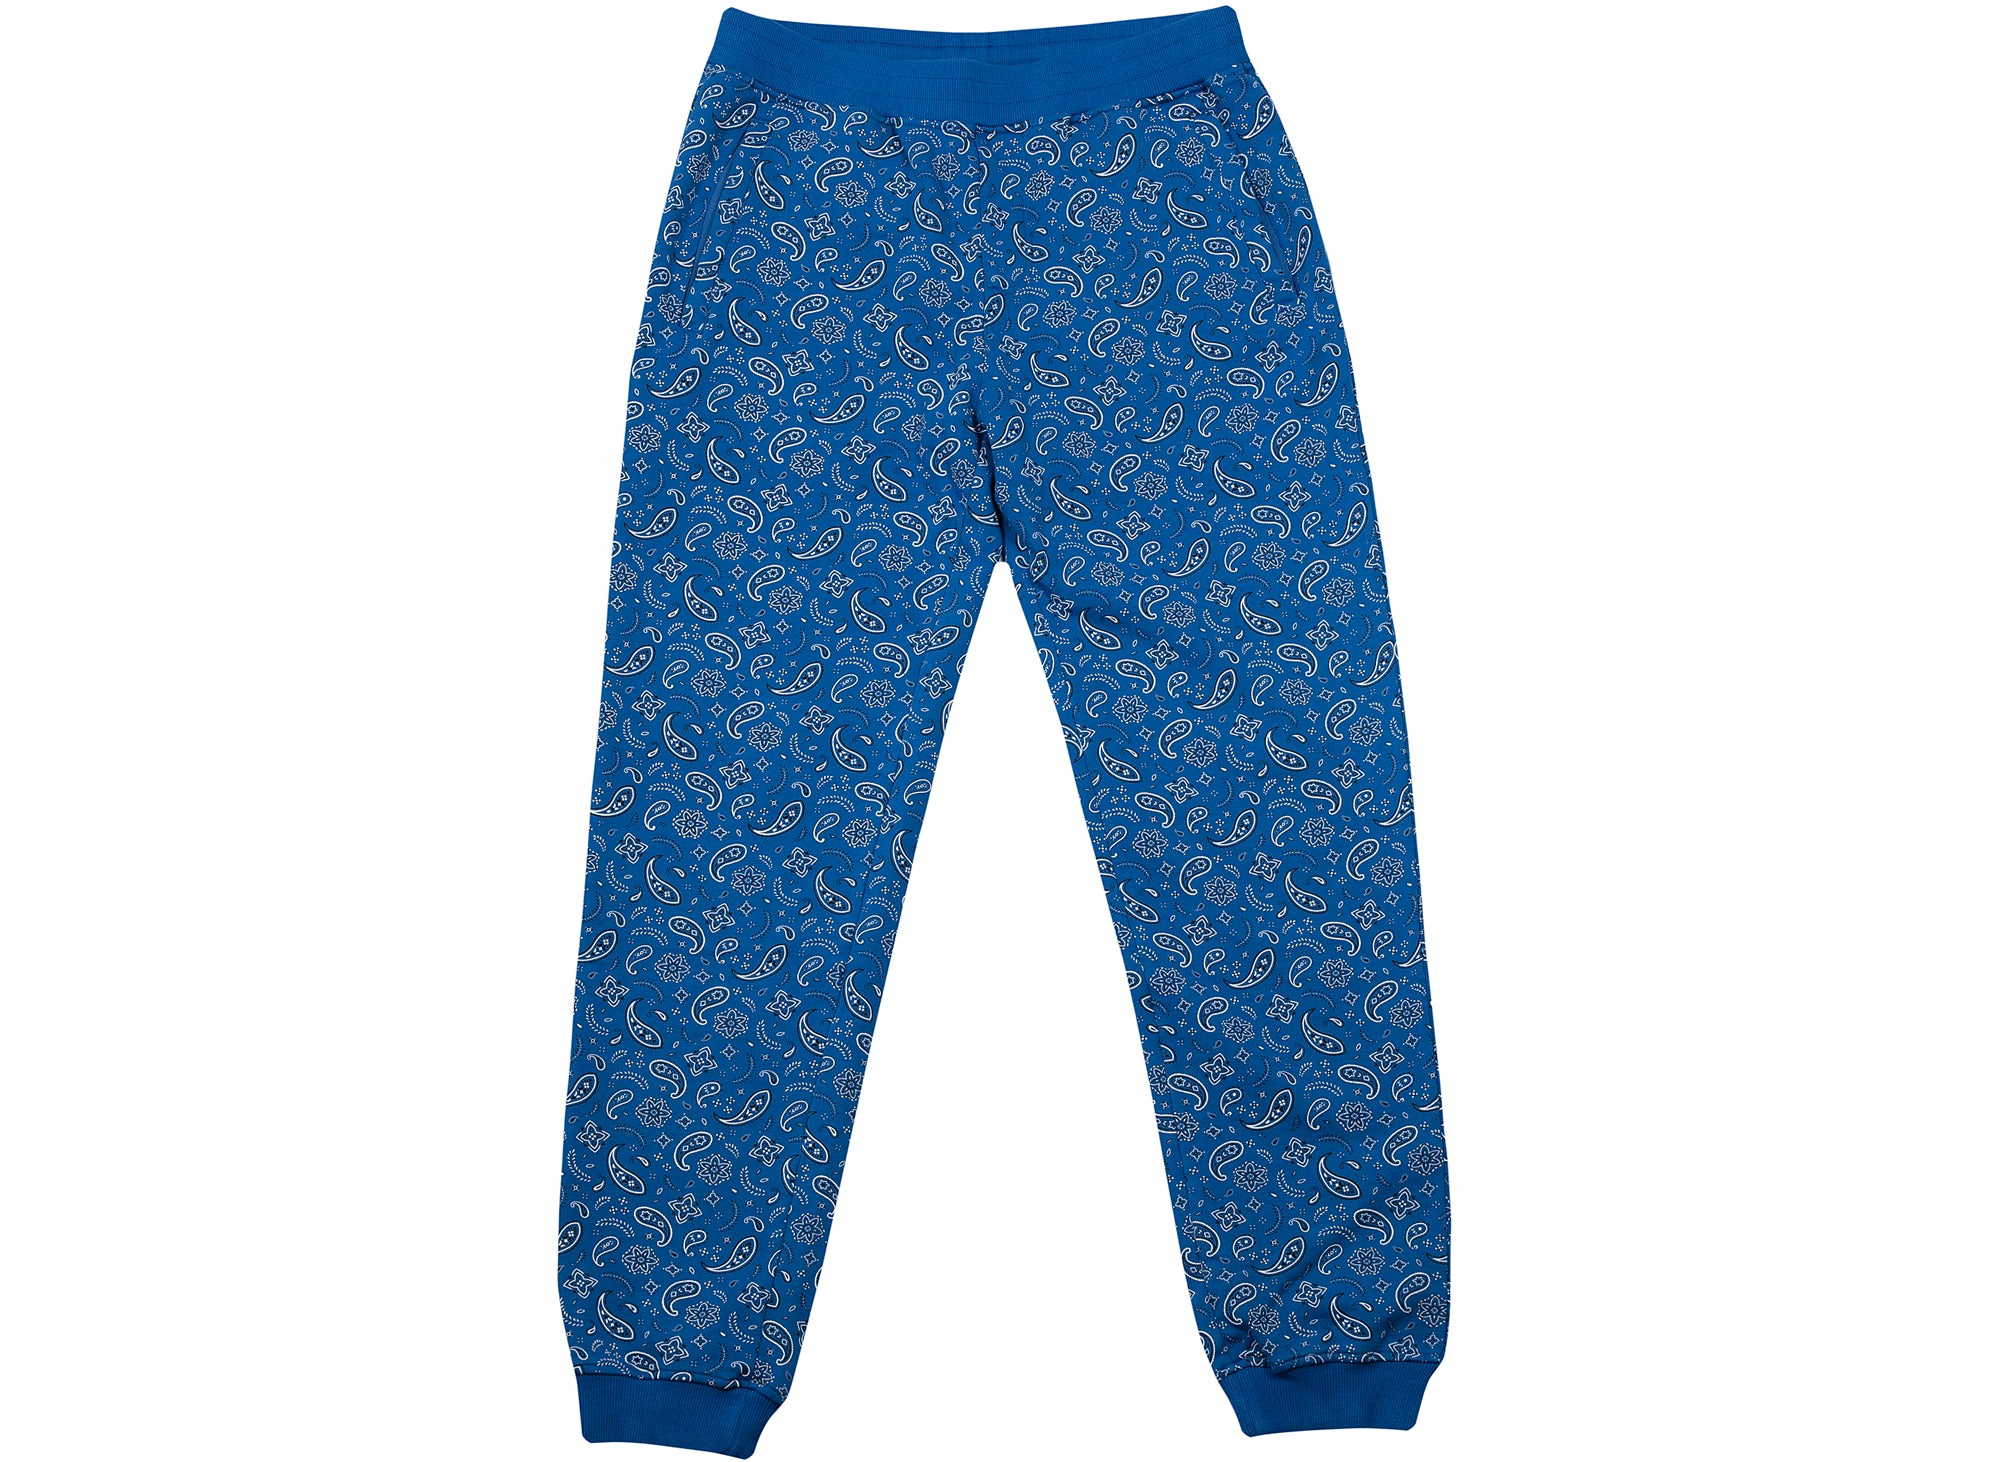 Oneness Sawyer Sweatpants in Blue xld